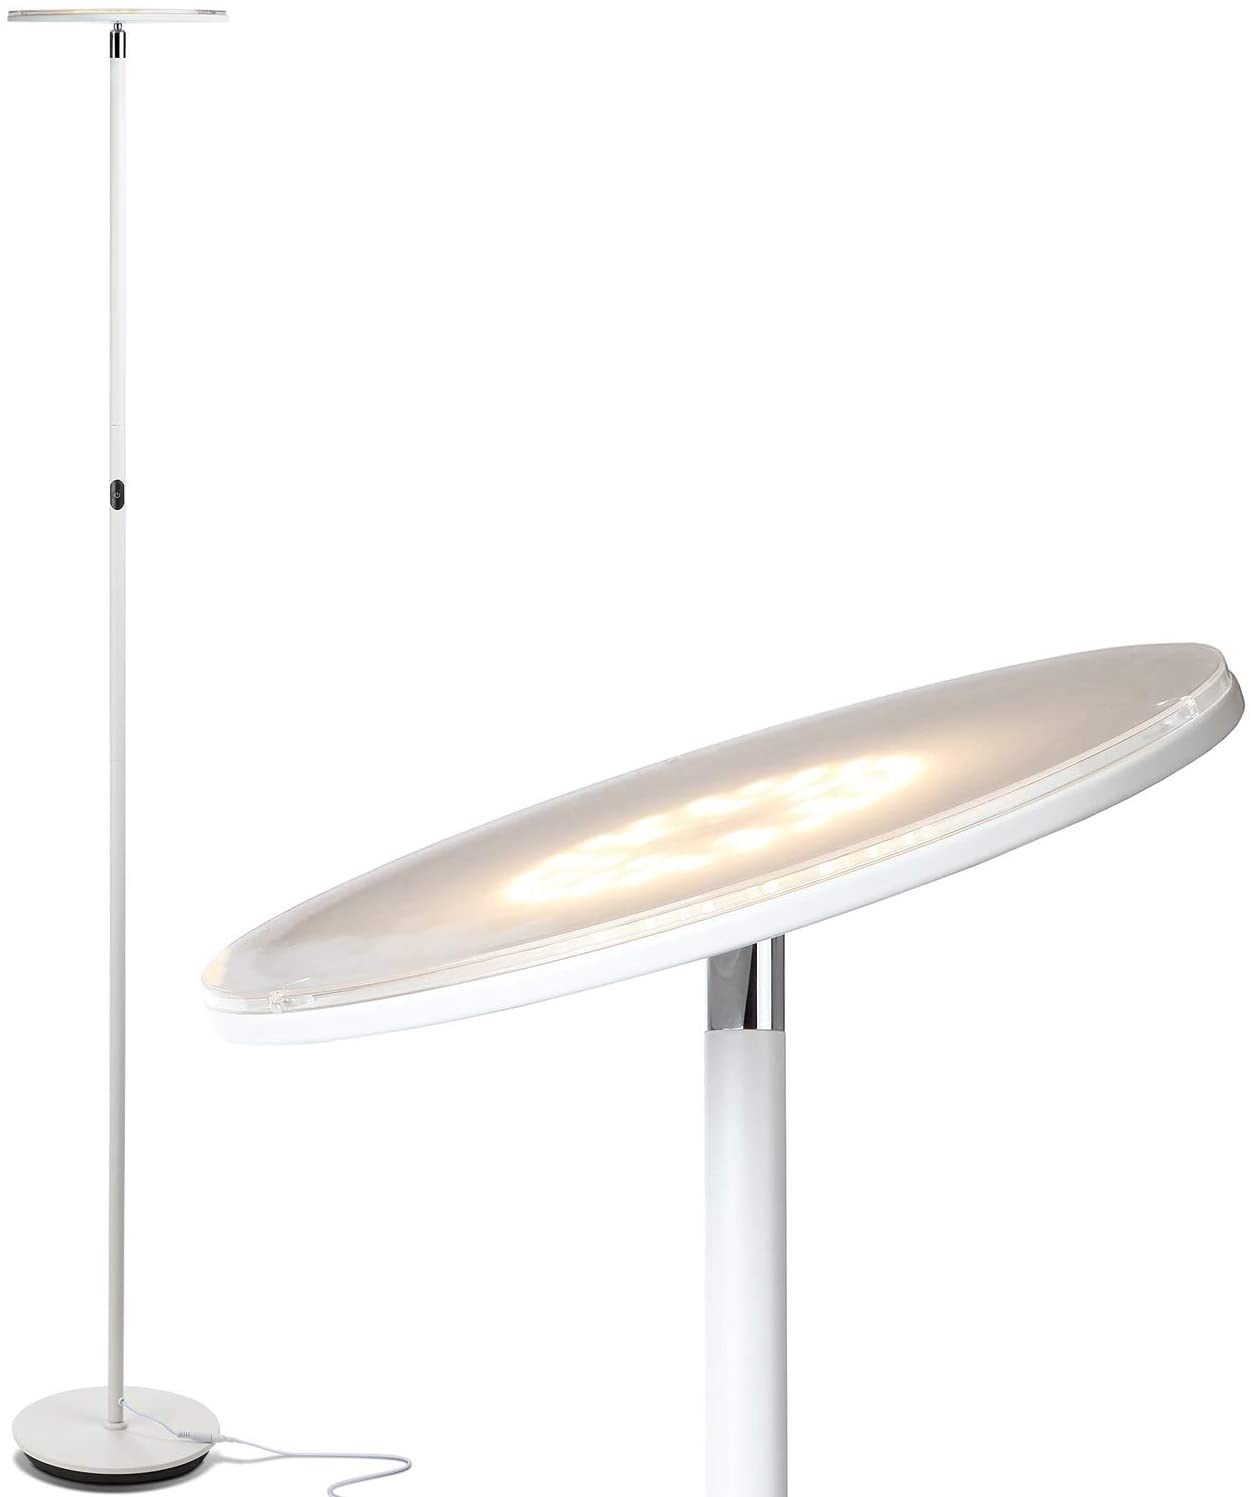 Brightech Sky LED Torchiere Floor Lamp - Energy Saving, Dimmable